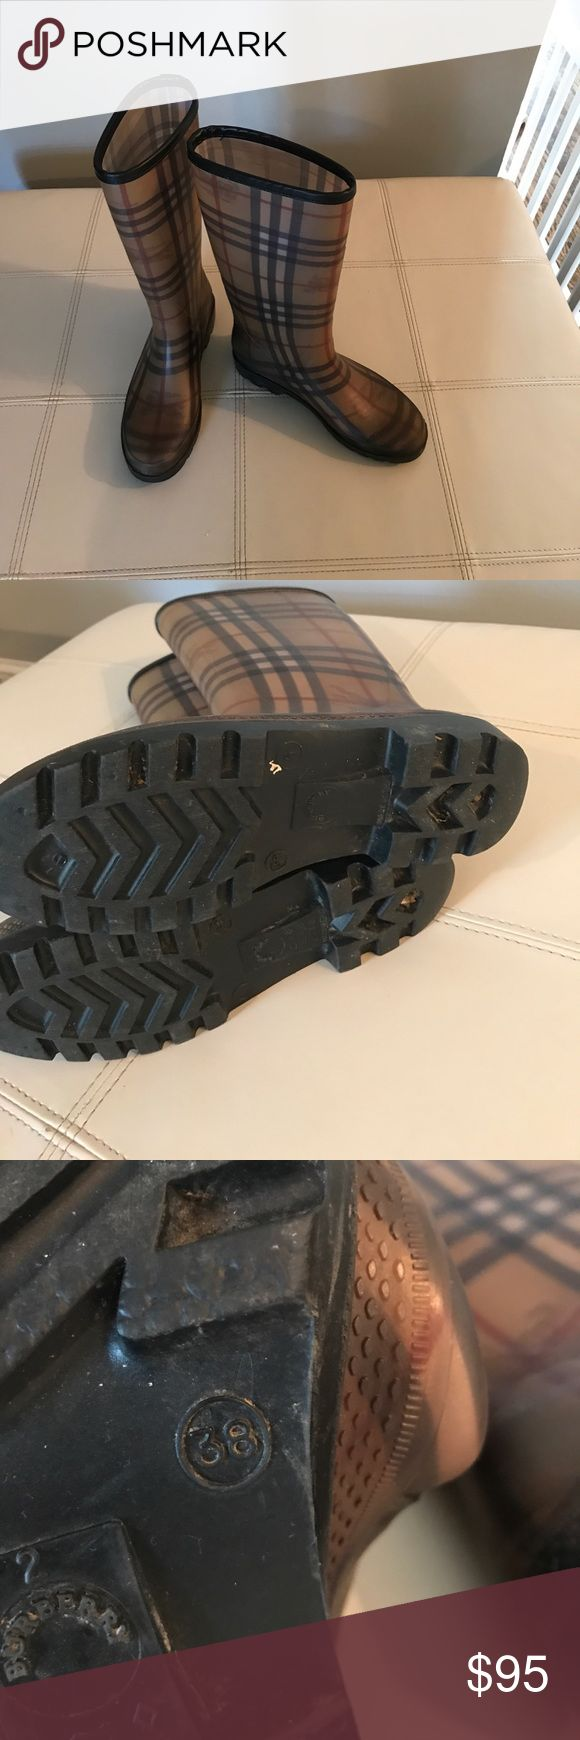 Burberry size 38 rain boot Burberry size 38 rain boot good condition Burberry Shoes Winter & Rain Boots